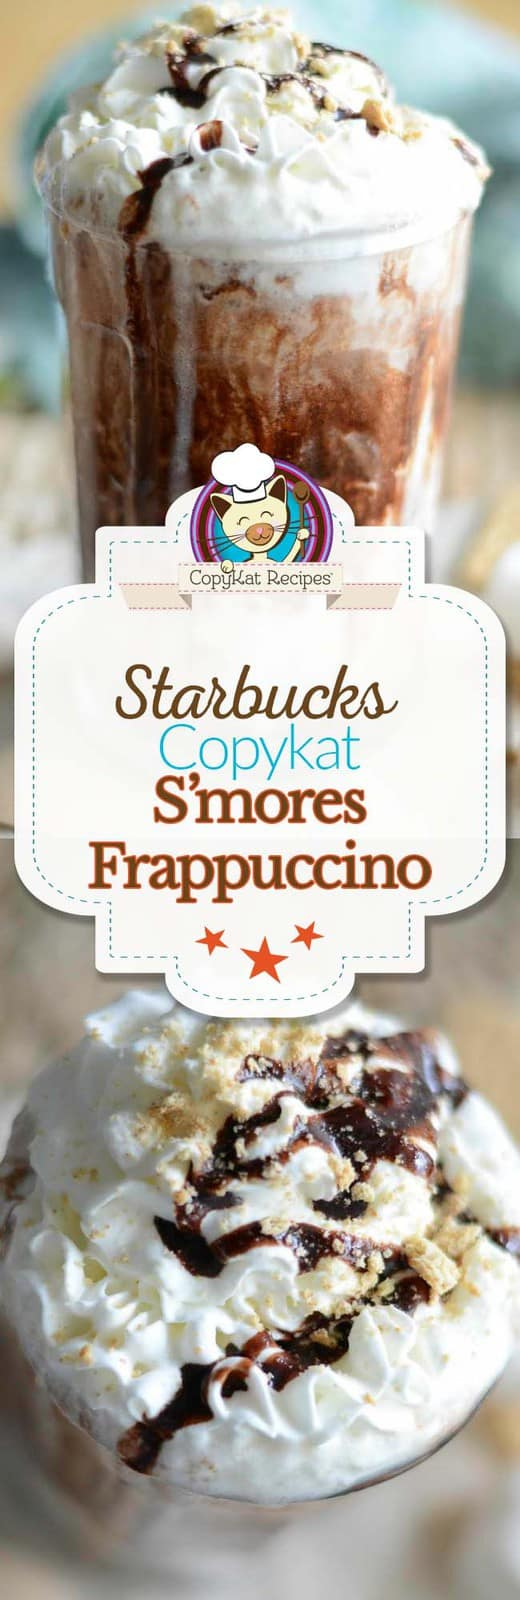 Make your own Starbucks S'mores Frappuccino at home with this easy copycat recipe.